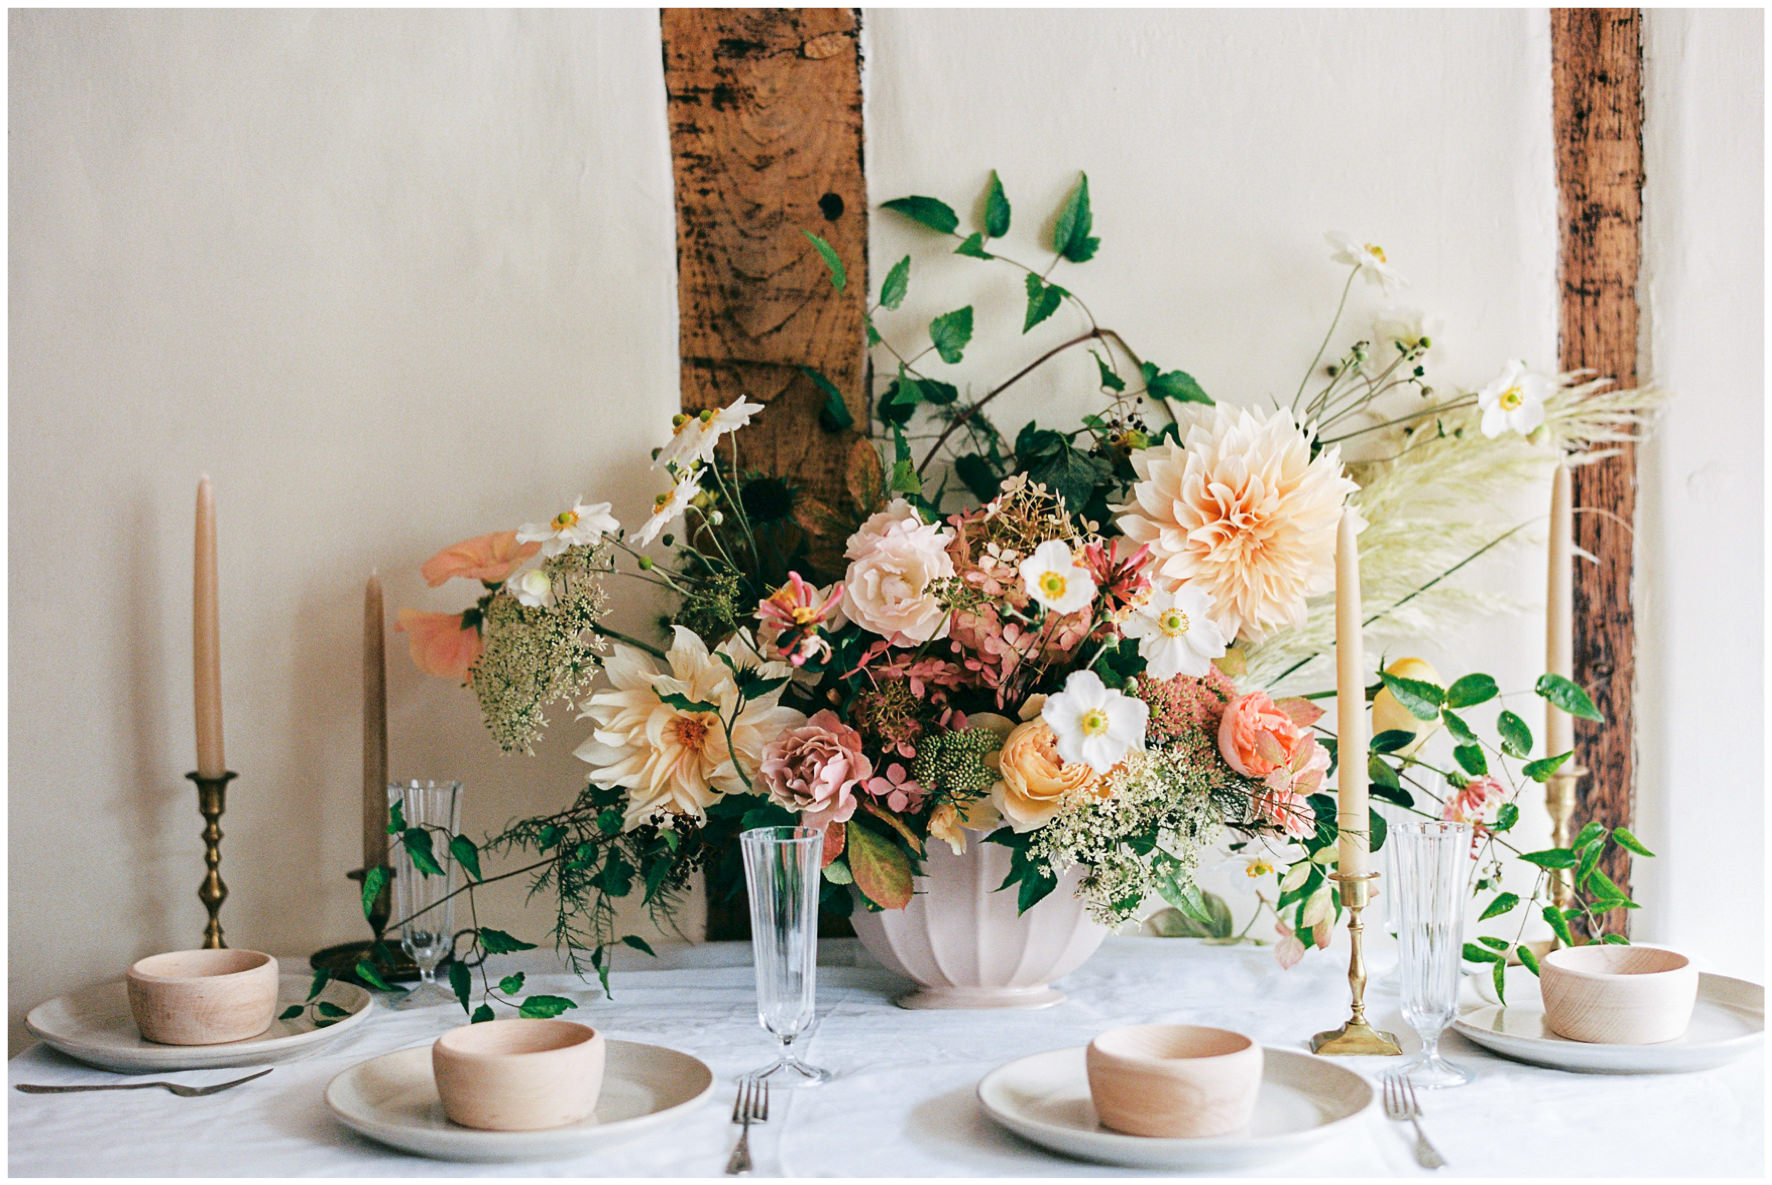 Lucy Davenport Photography, Once Wed, Home Creations, The Wedding Stylist, Verity & Thyme, tablescape, intimate dinner, wedding breakfast, florals,